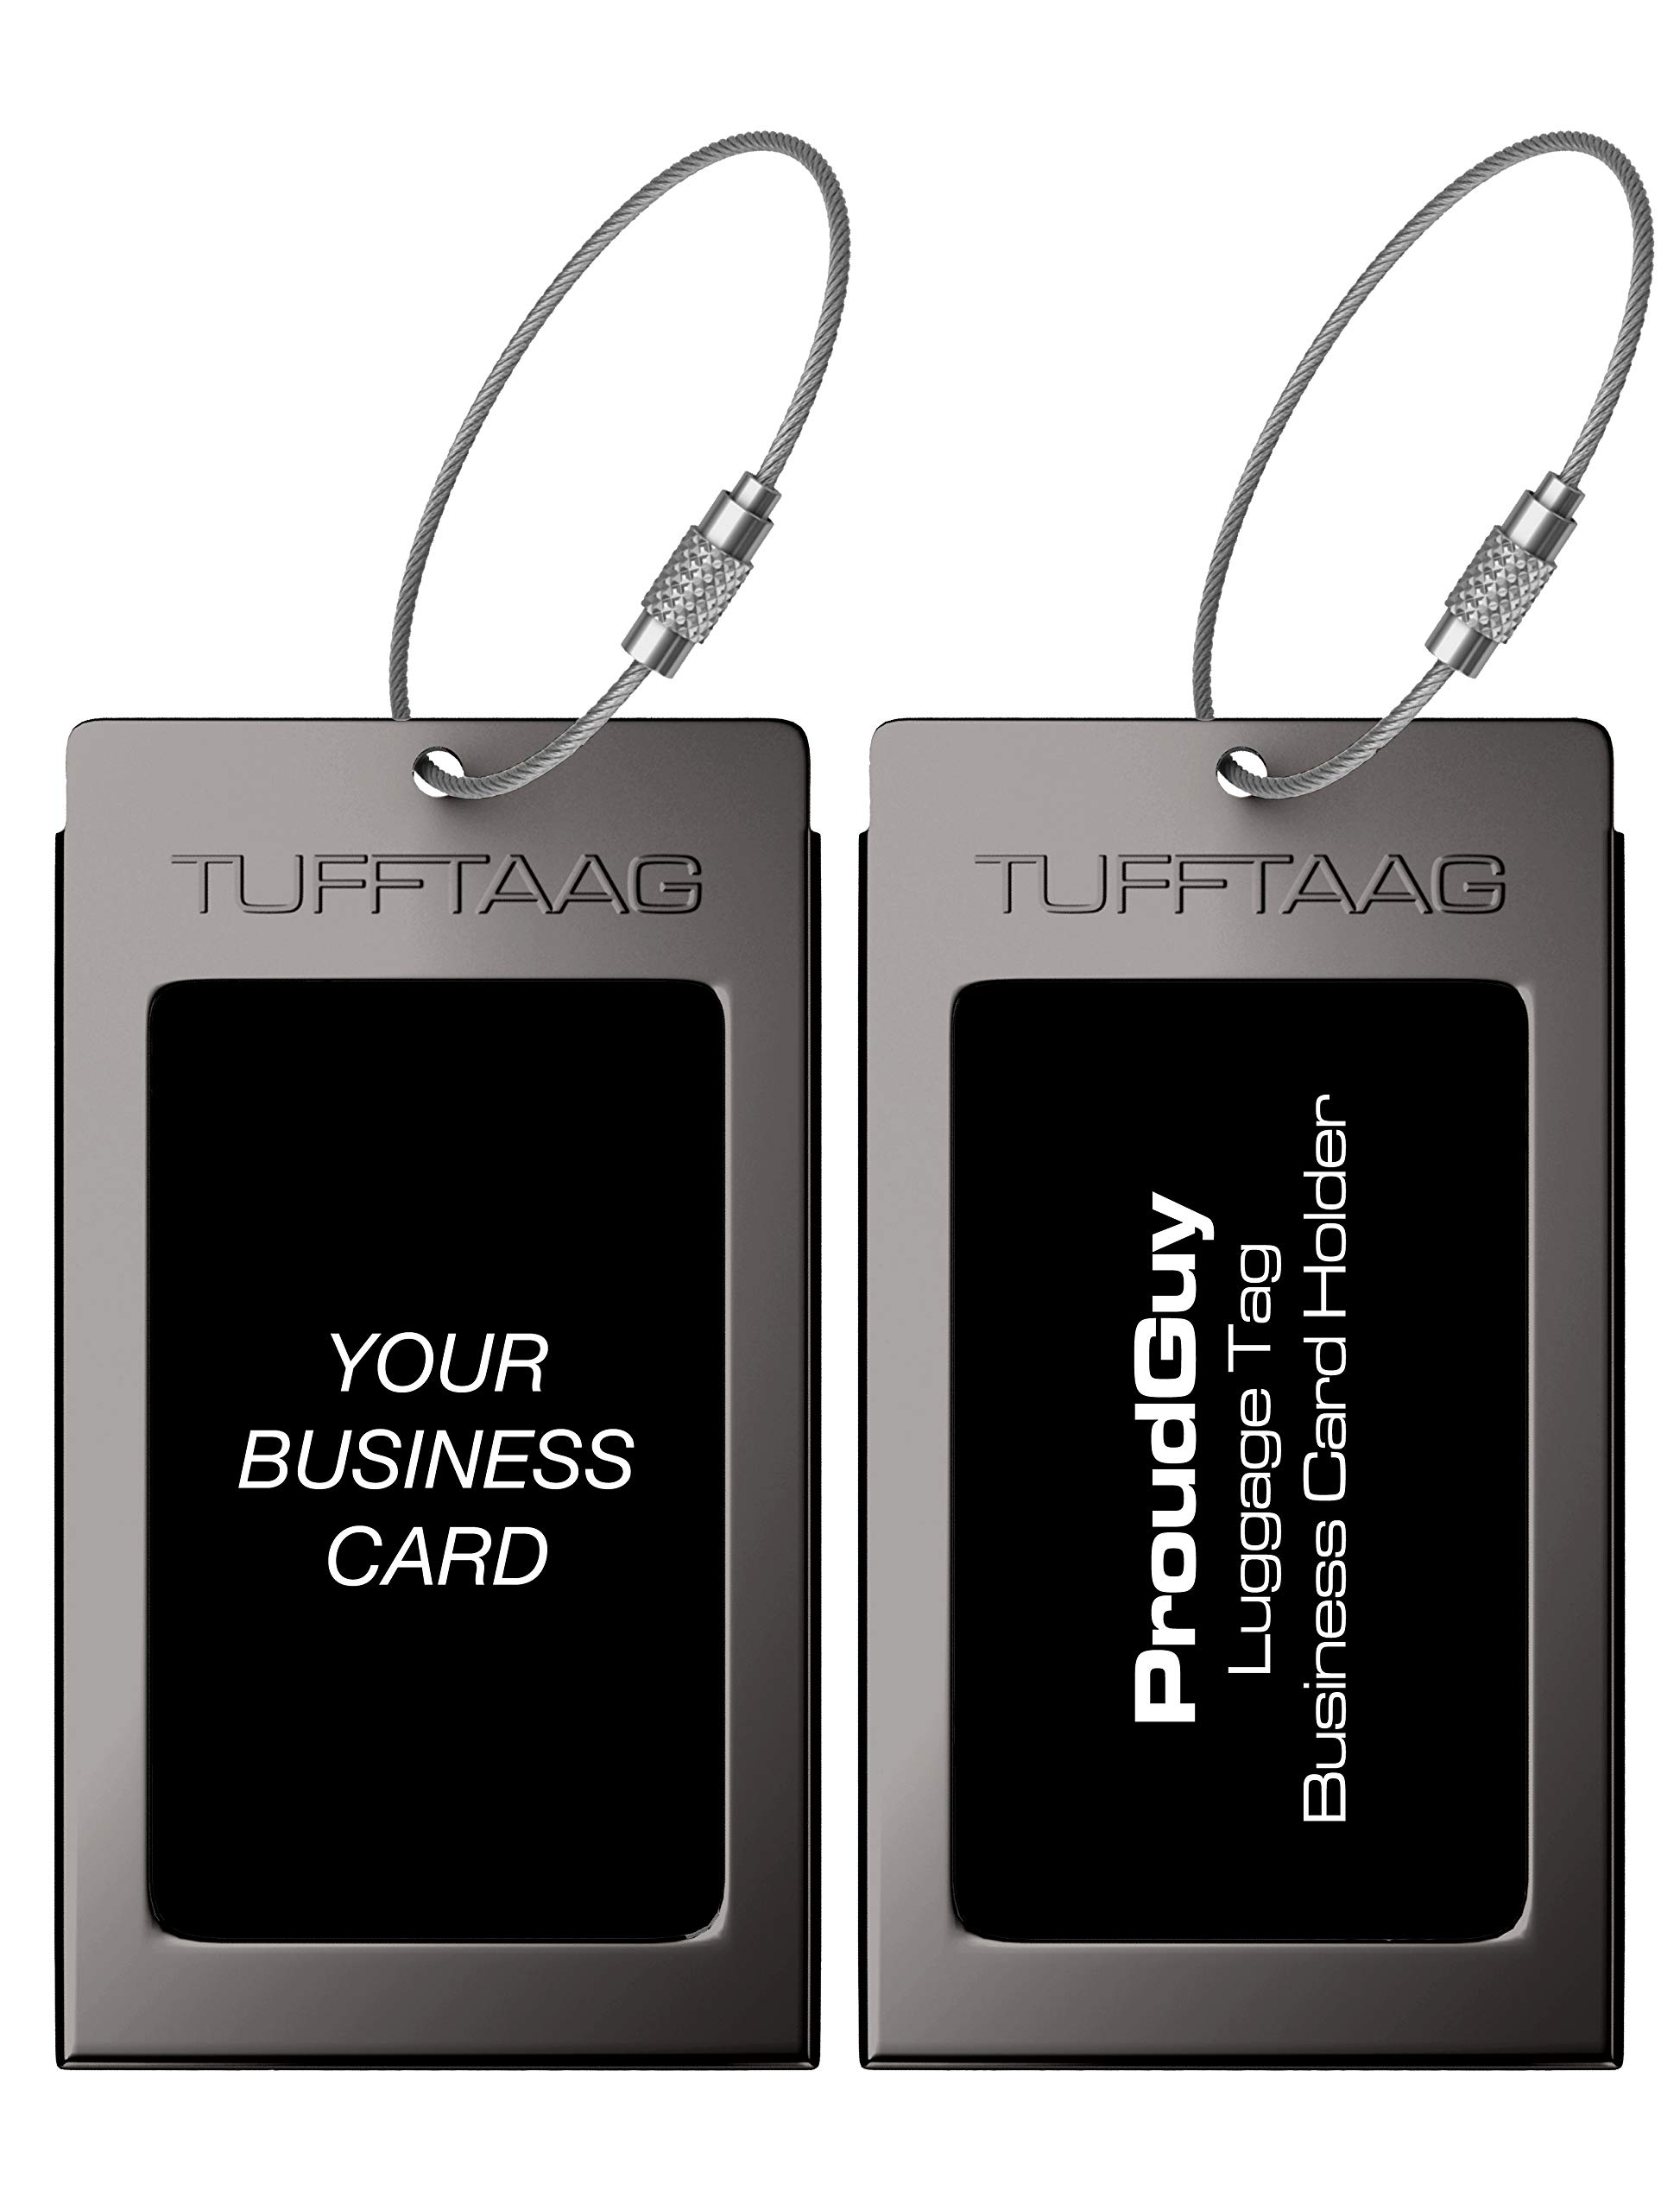 Luggage Tags Business Card Holder TUFFTAAG Travel ID Bag Tag in Many Color Options (2 Tags, Gunmetal Steel) by ProudGuy